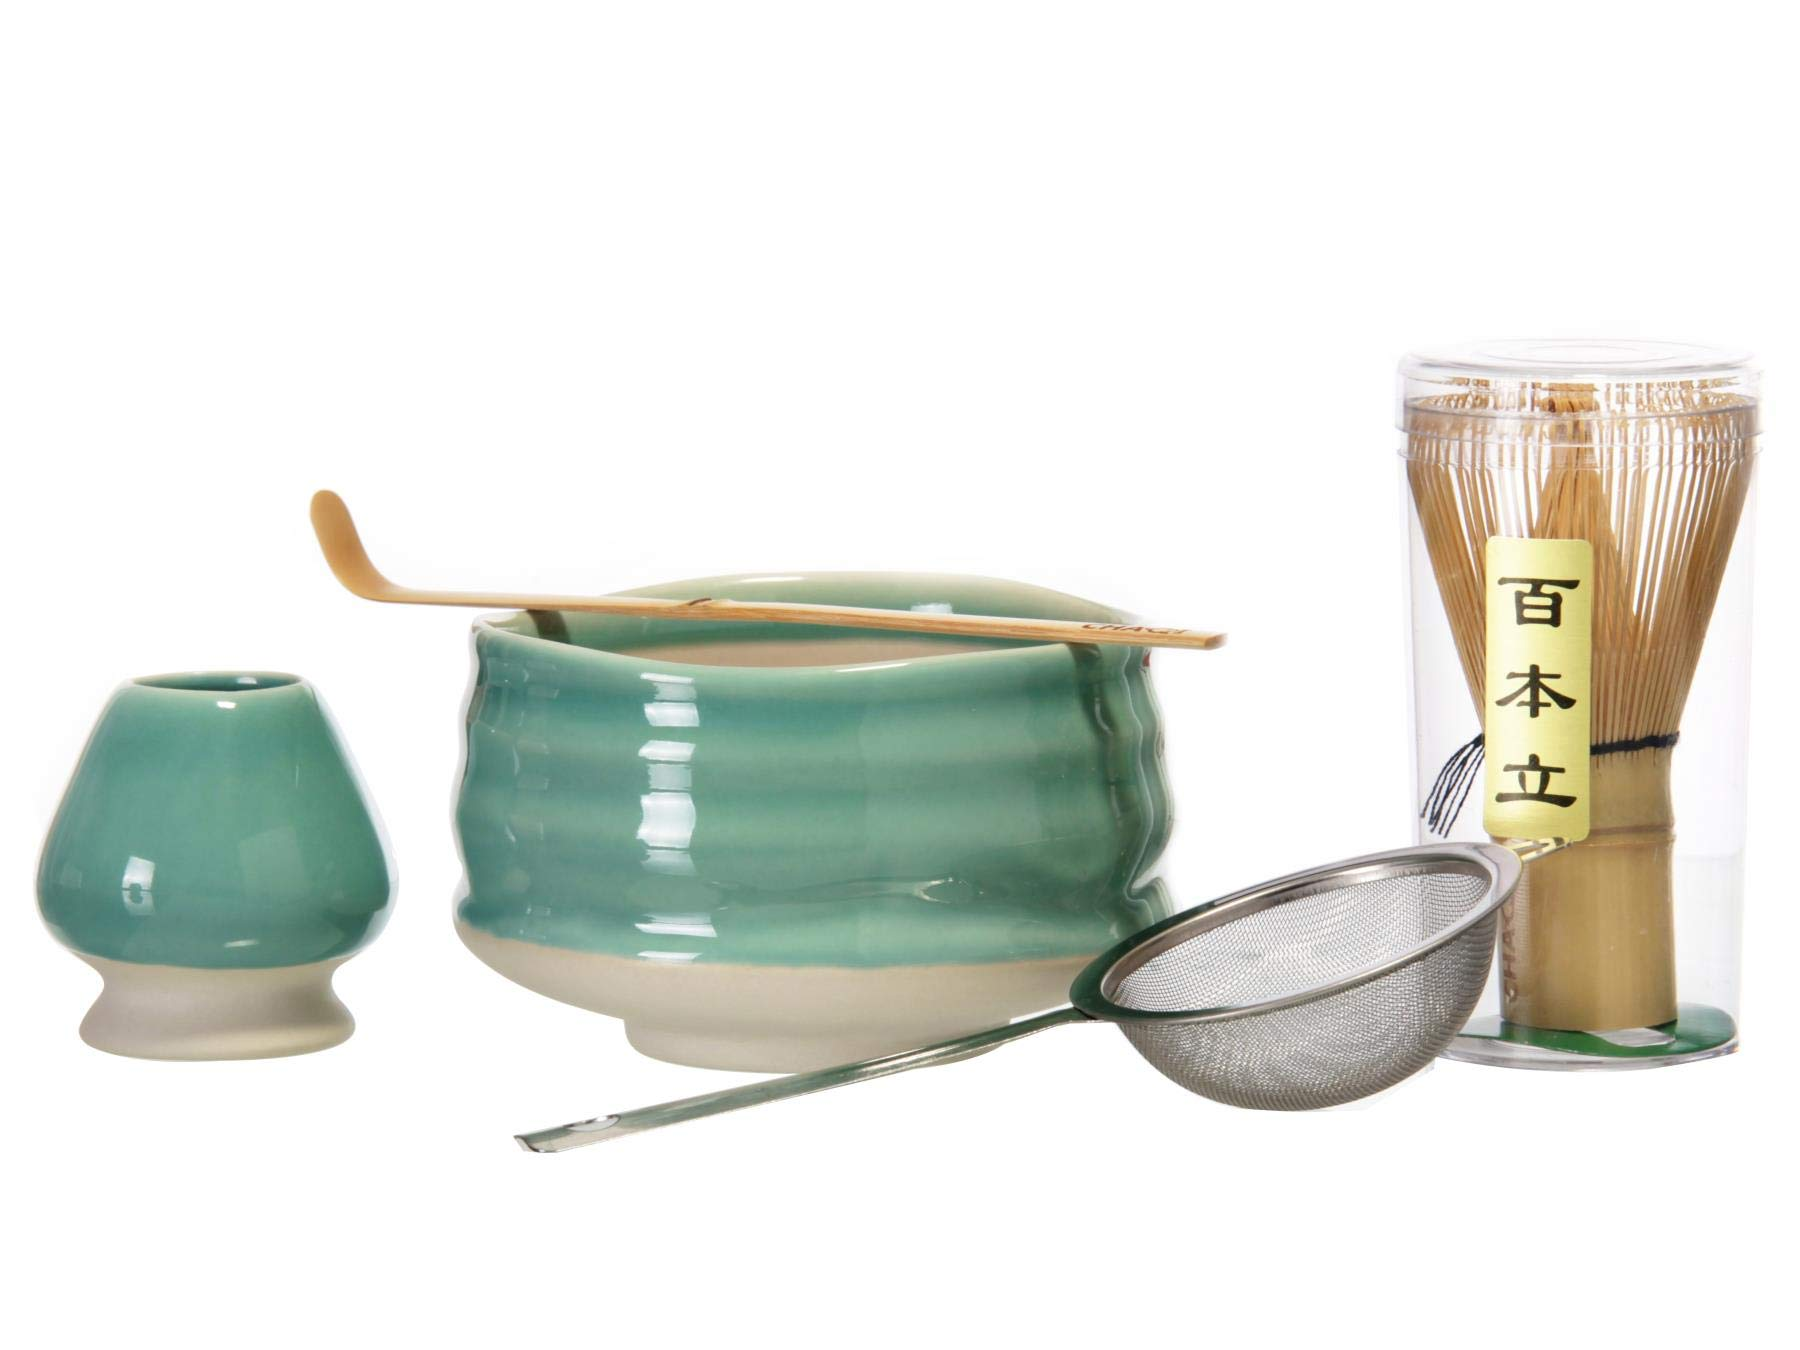 CHAQI Matcha Accessories Kit Include 5 items-100 Prongs Bamboo Whisk Chasen,Bamboo Scoop,Stainless Steel Tea Sifter and Ceramic Matcha Bowl & Whisk Holder (Cyan)